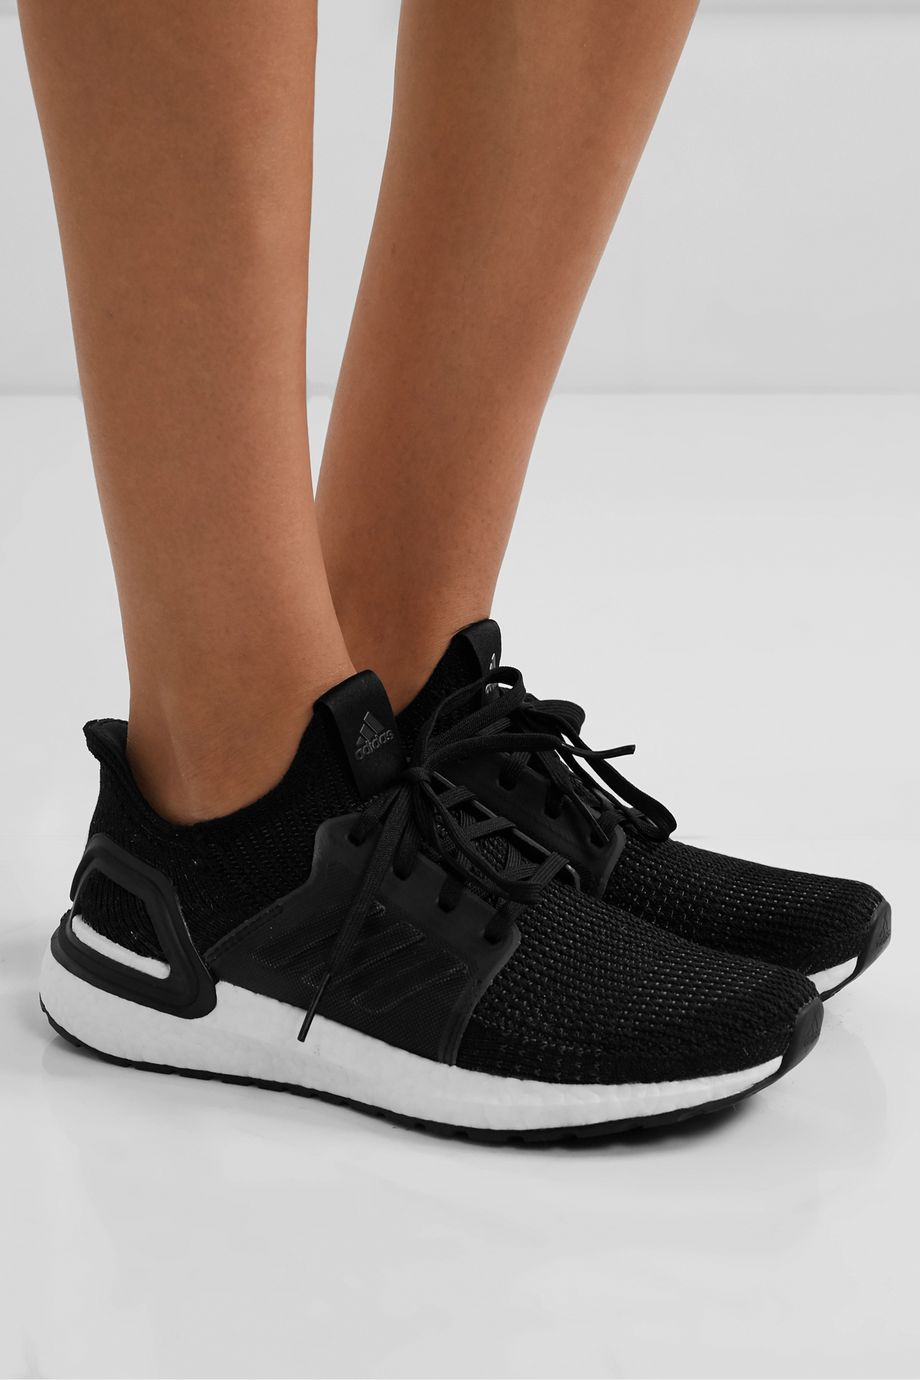 adidas Originals Ultraboost 19 mesh and rubber-trimmed Primeknit sneakers